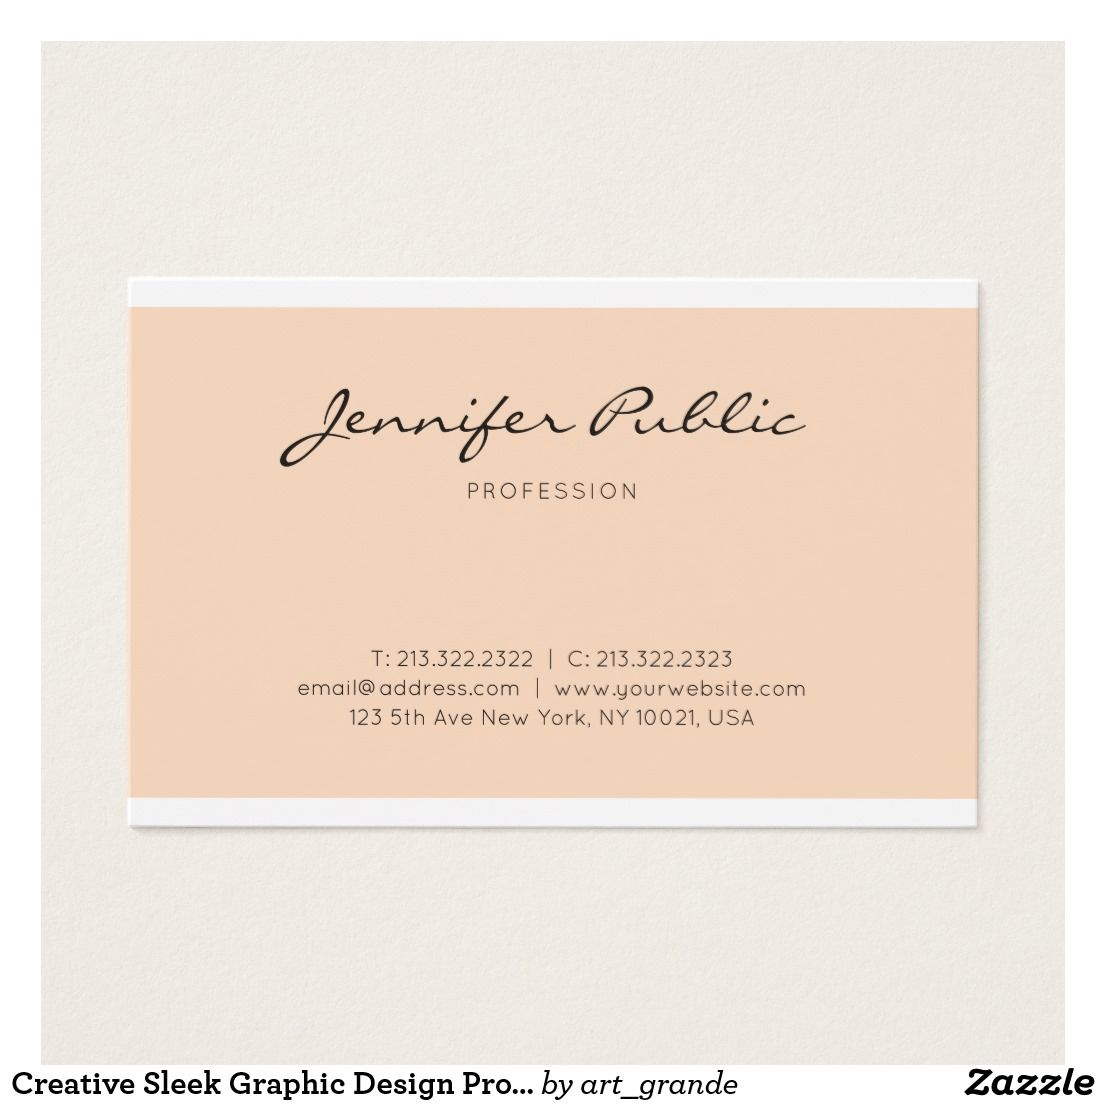 Creative Sleek Graphic Design Professional Plain Business Card